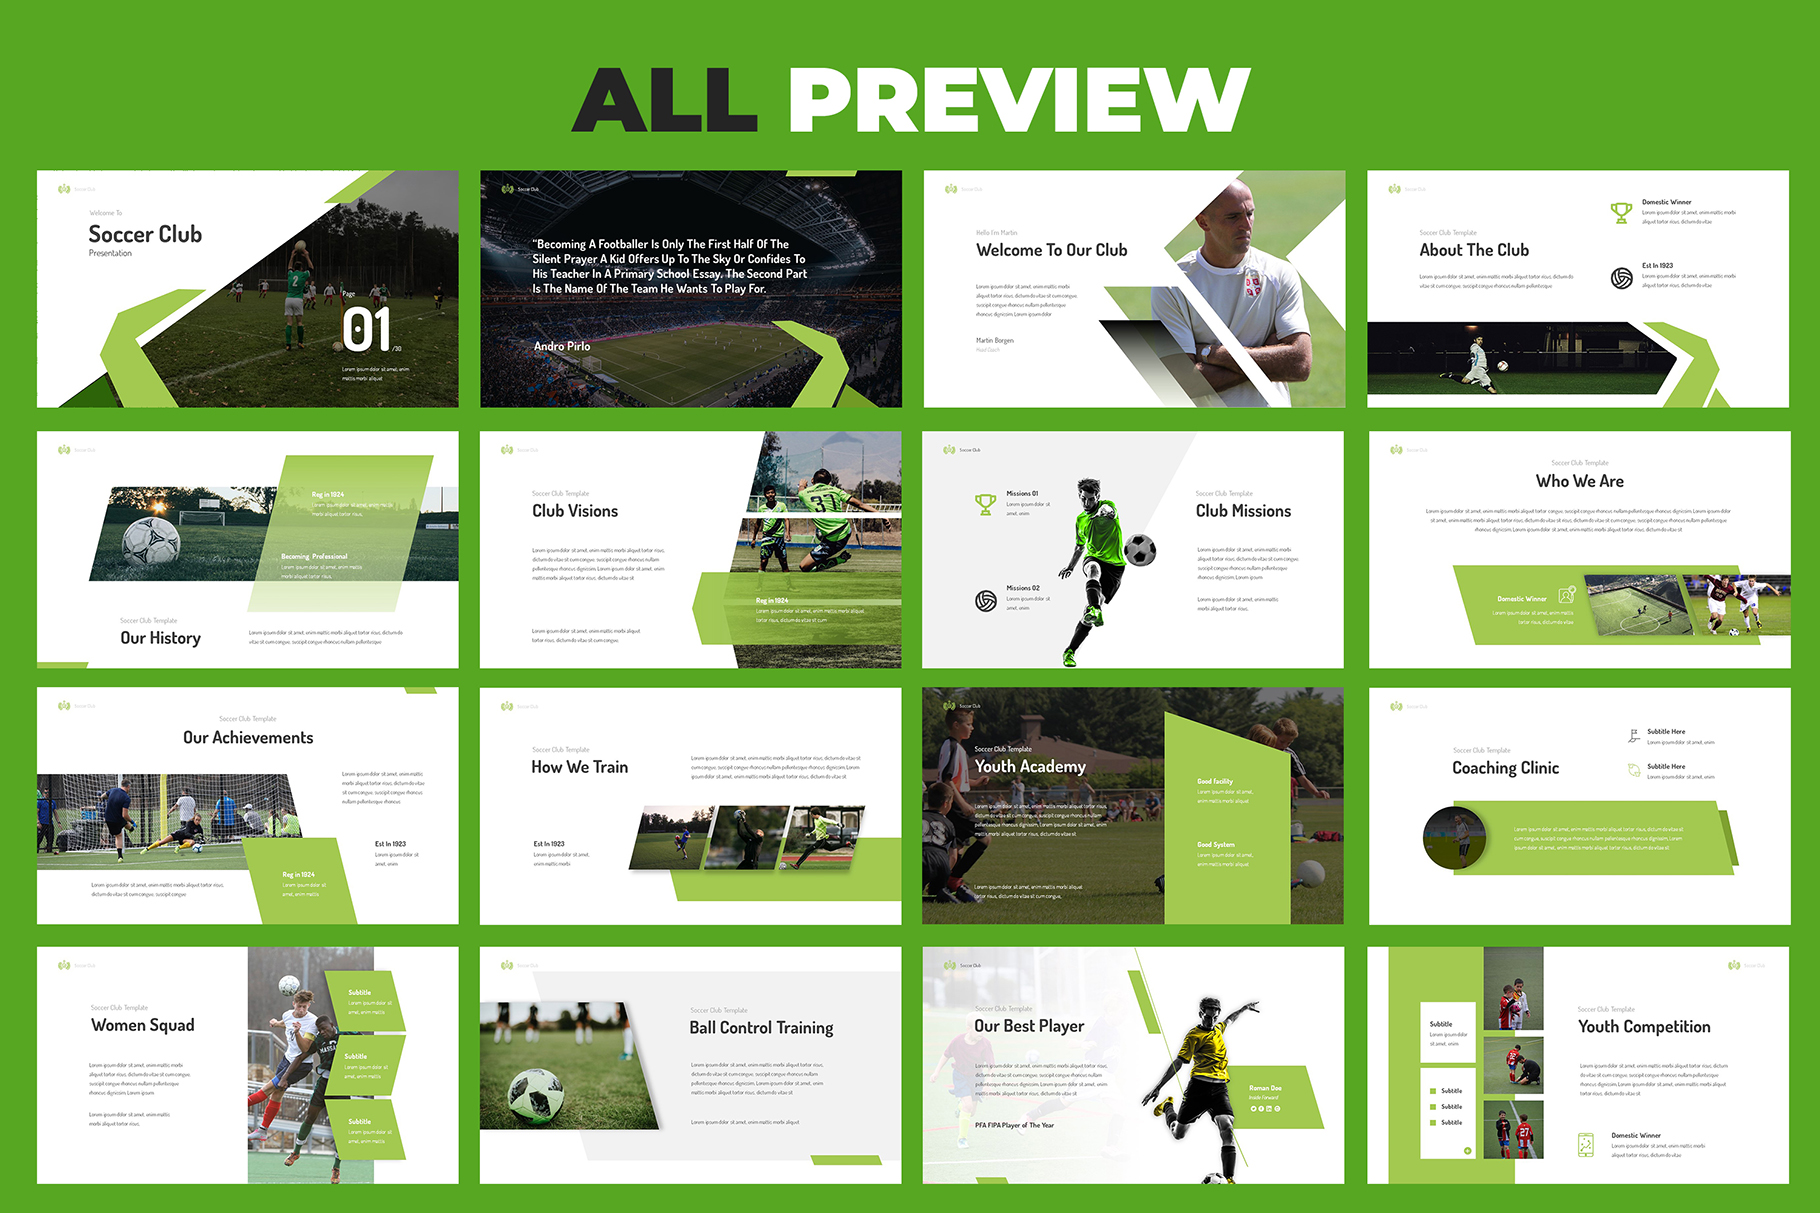 Soccer Club Powerpoint Presentation example image 5